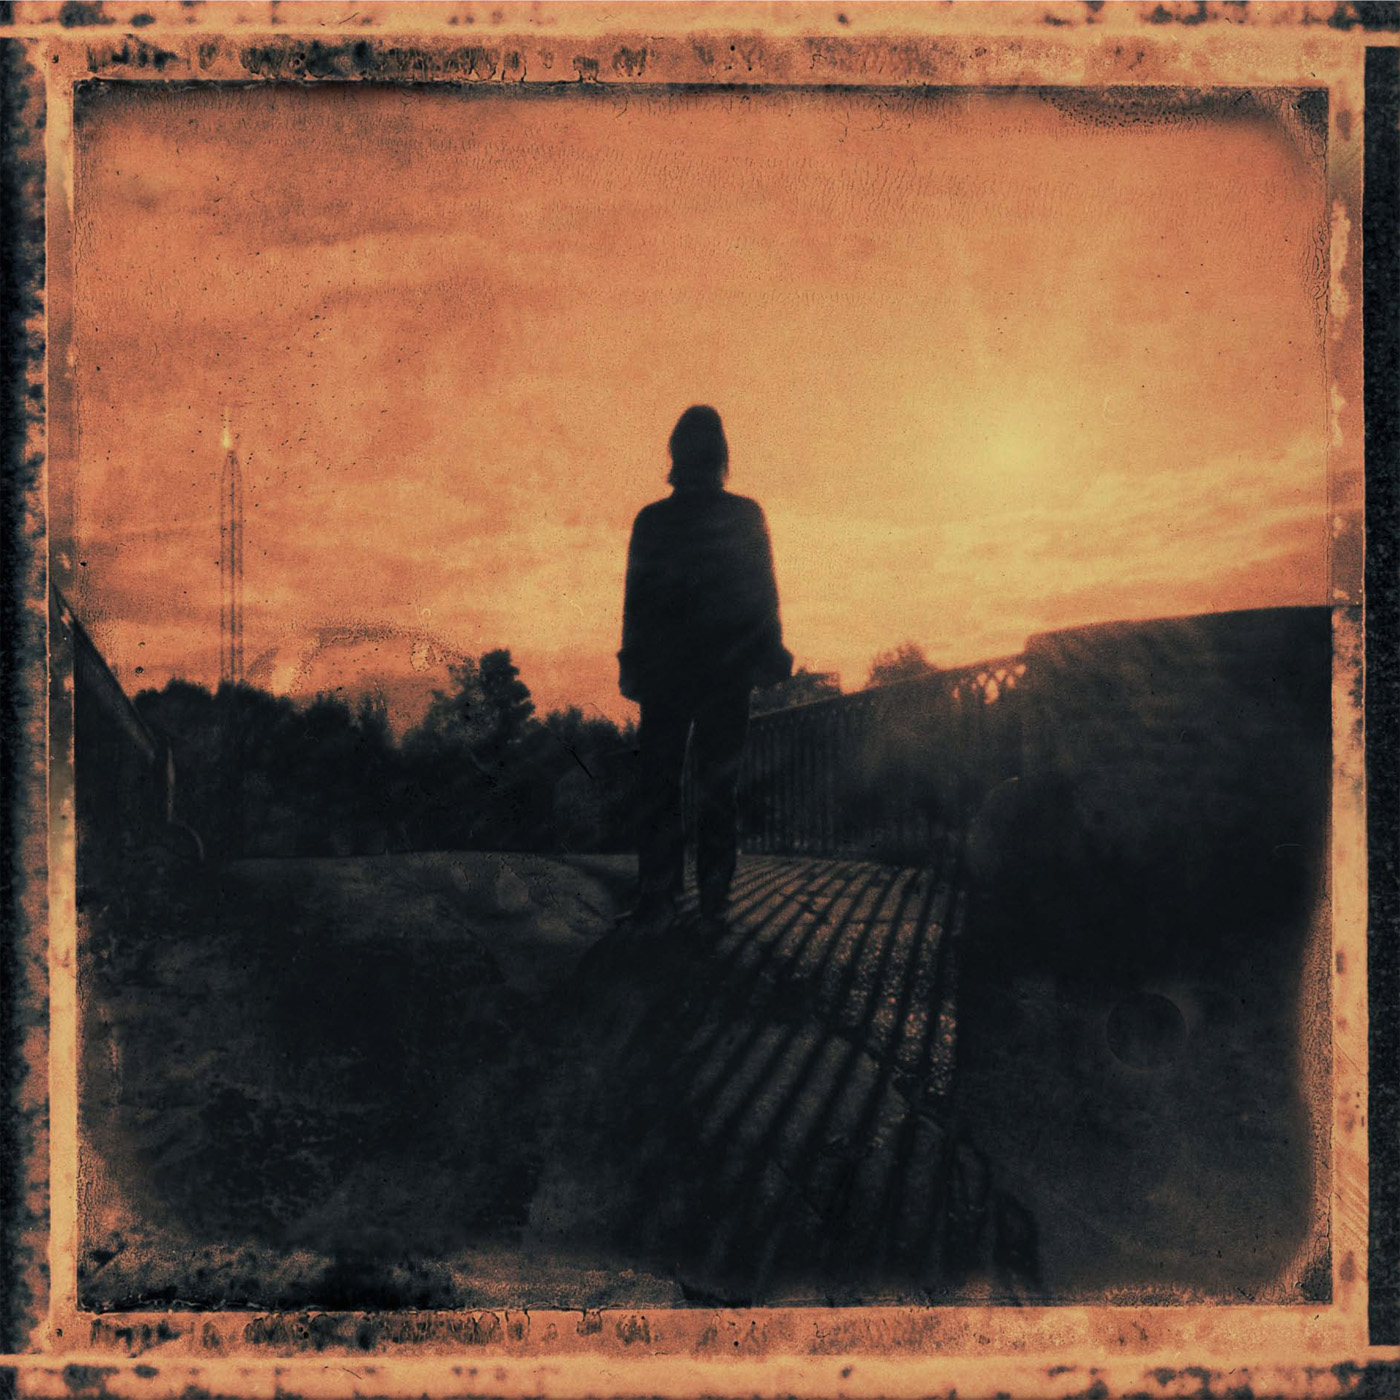 Steven Wilson – Grace for drowning